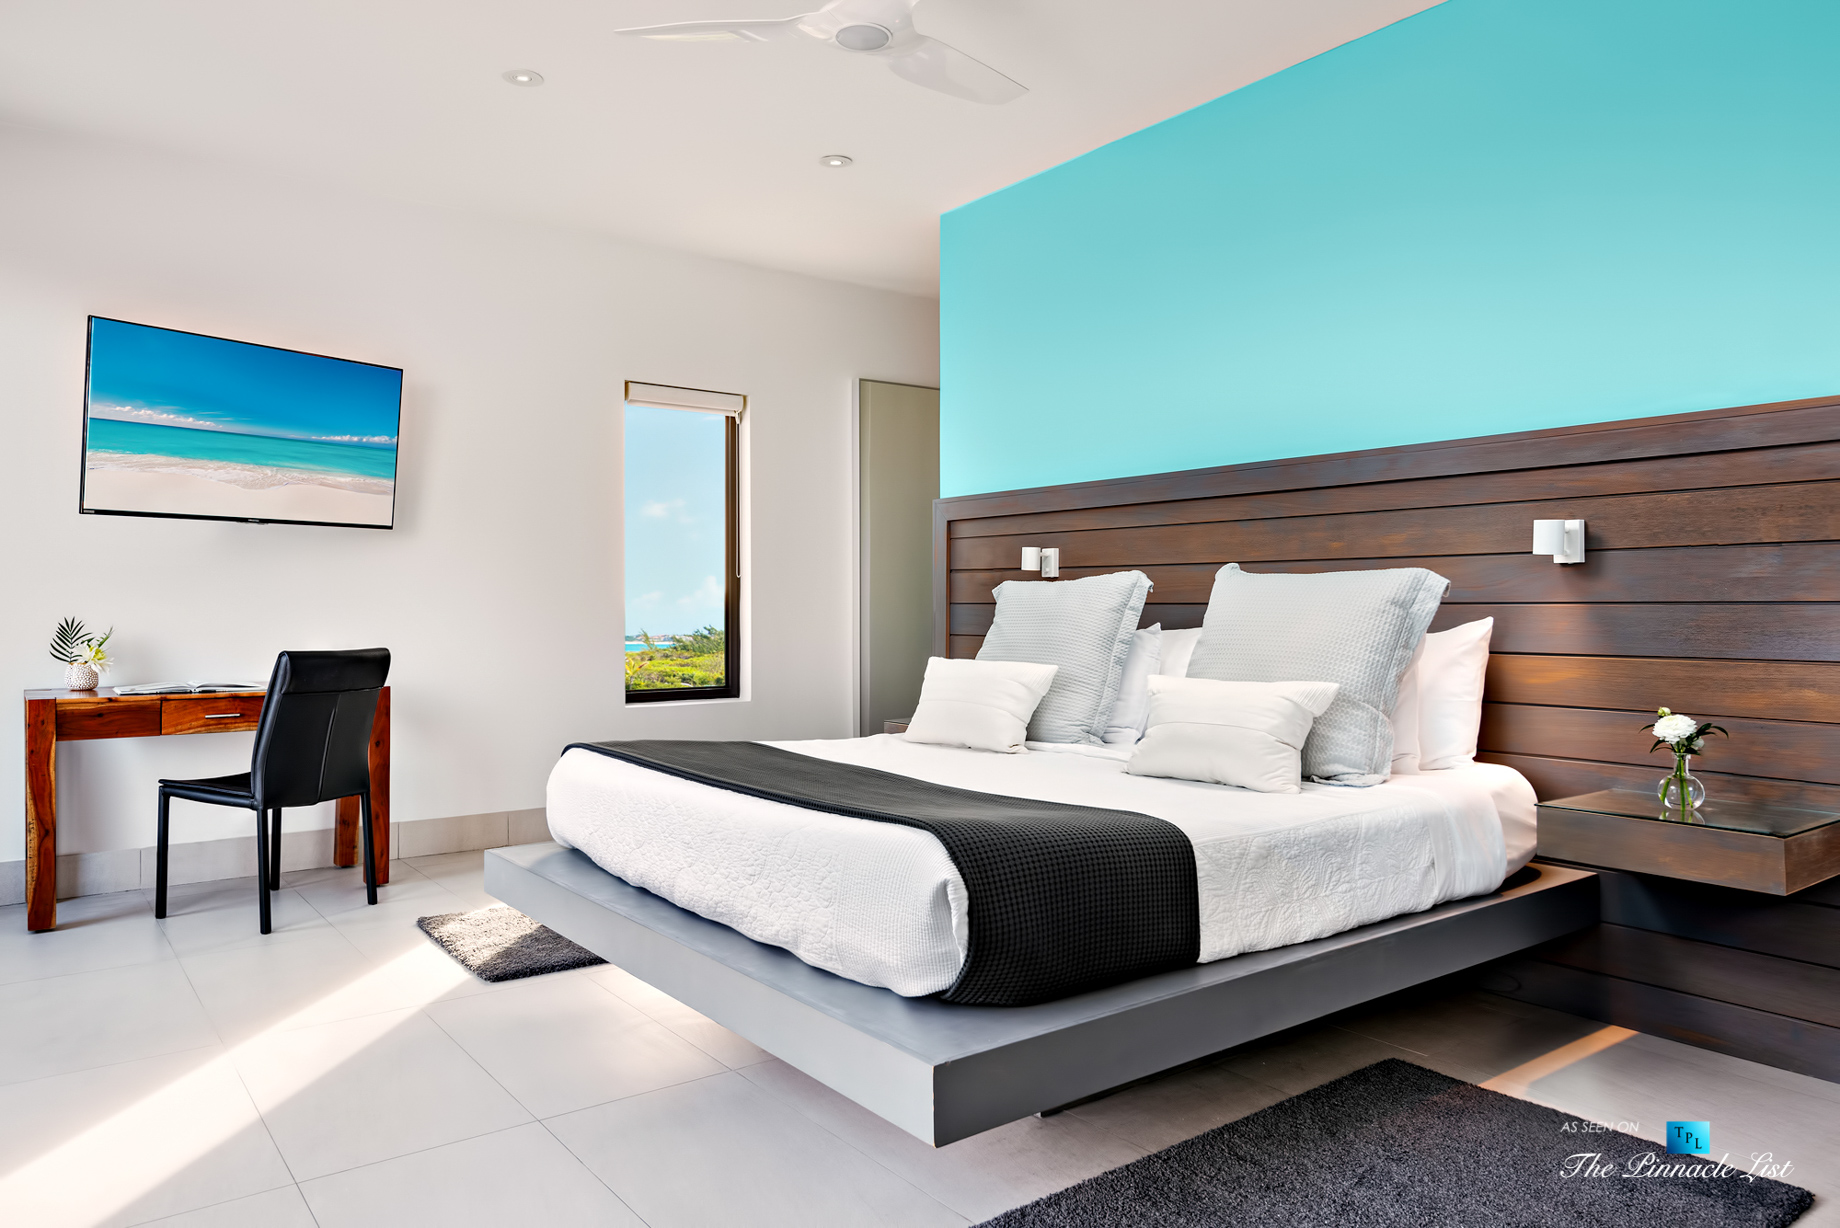 Tip of the Tail Villa - Providenciales, Turks and Caicos Islands - Caribbean House Bedroom - Luxury Real Estate - South Shore Peninsula Home